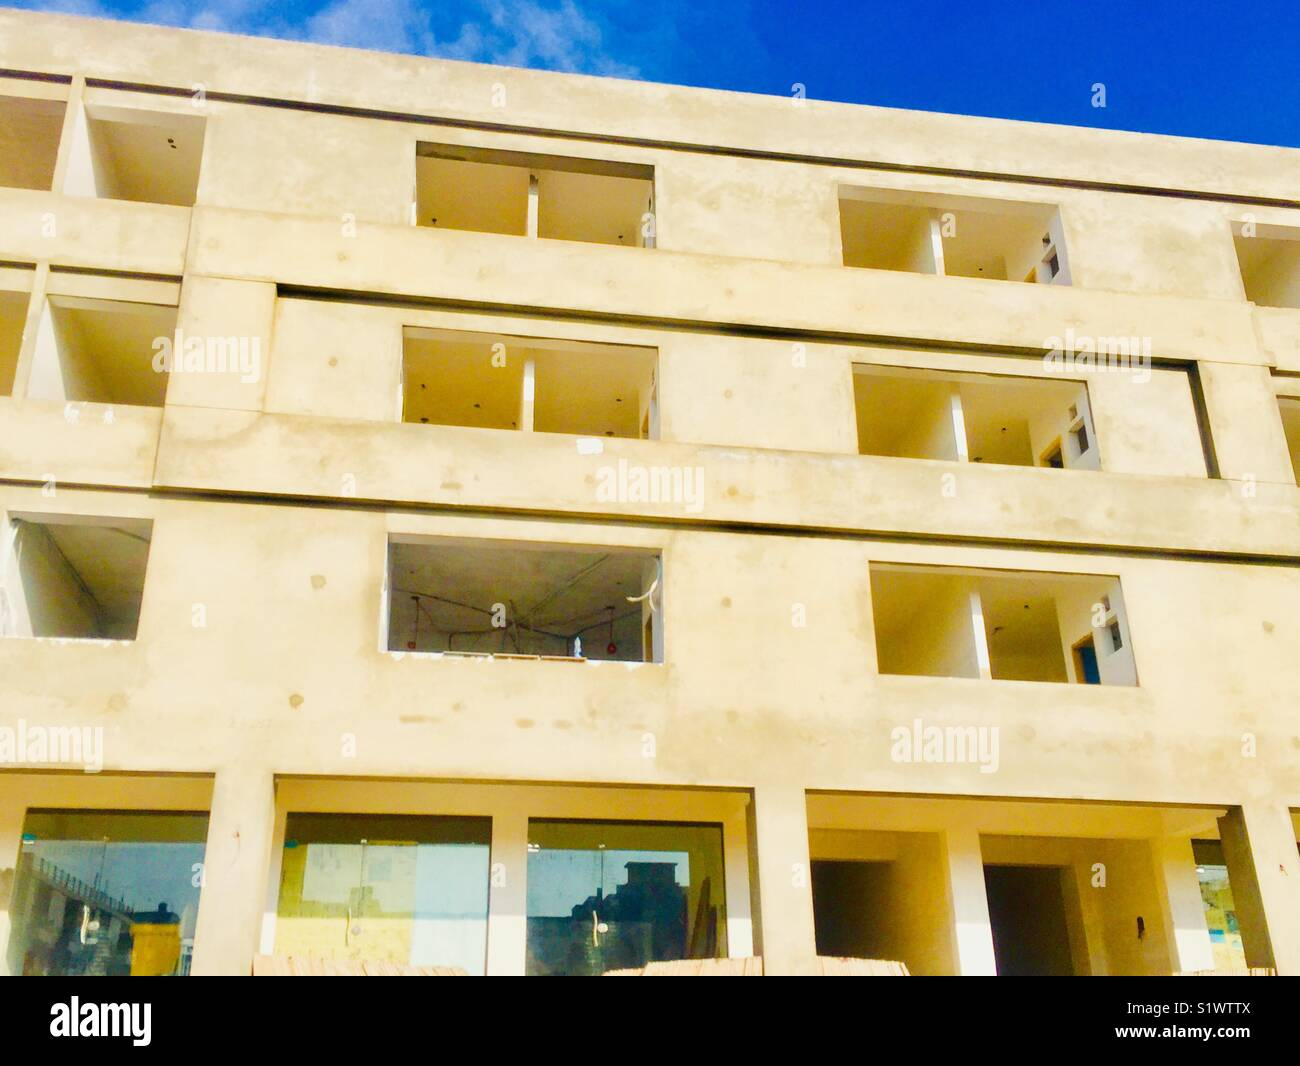 Incomplete building in Islamabad city Pakistan - Stock Image